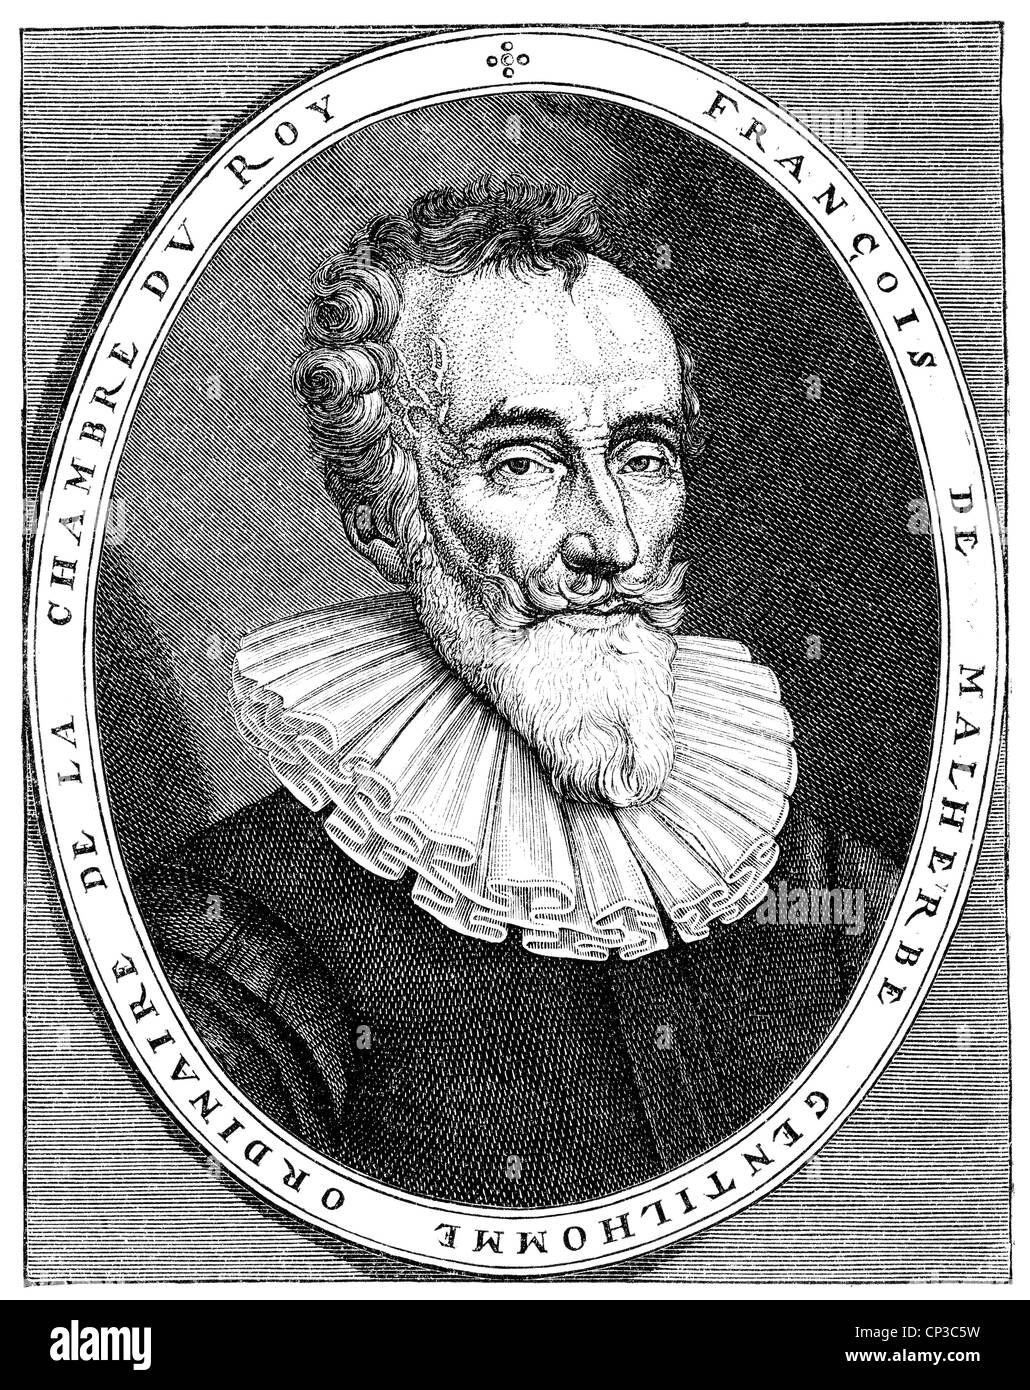 François de Malherbe, 1555 - 1628, a French writer who paved the way for French classicism, - Stock Image